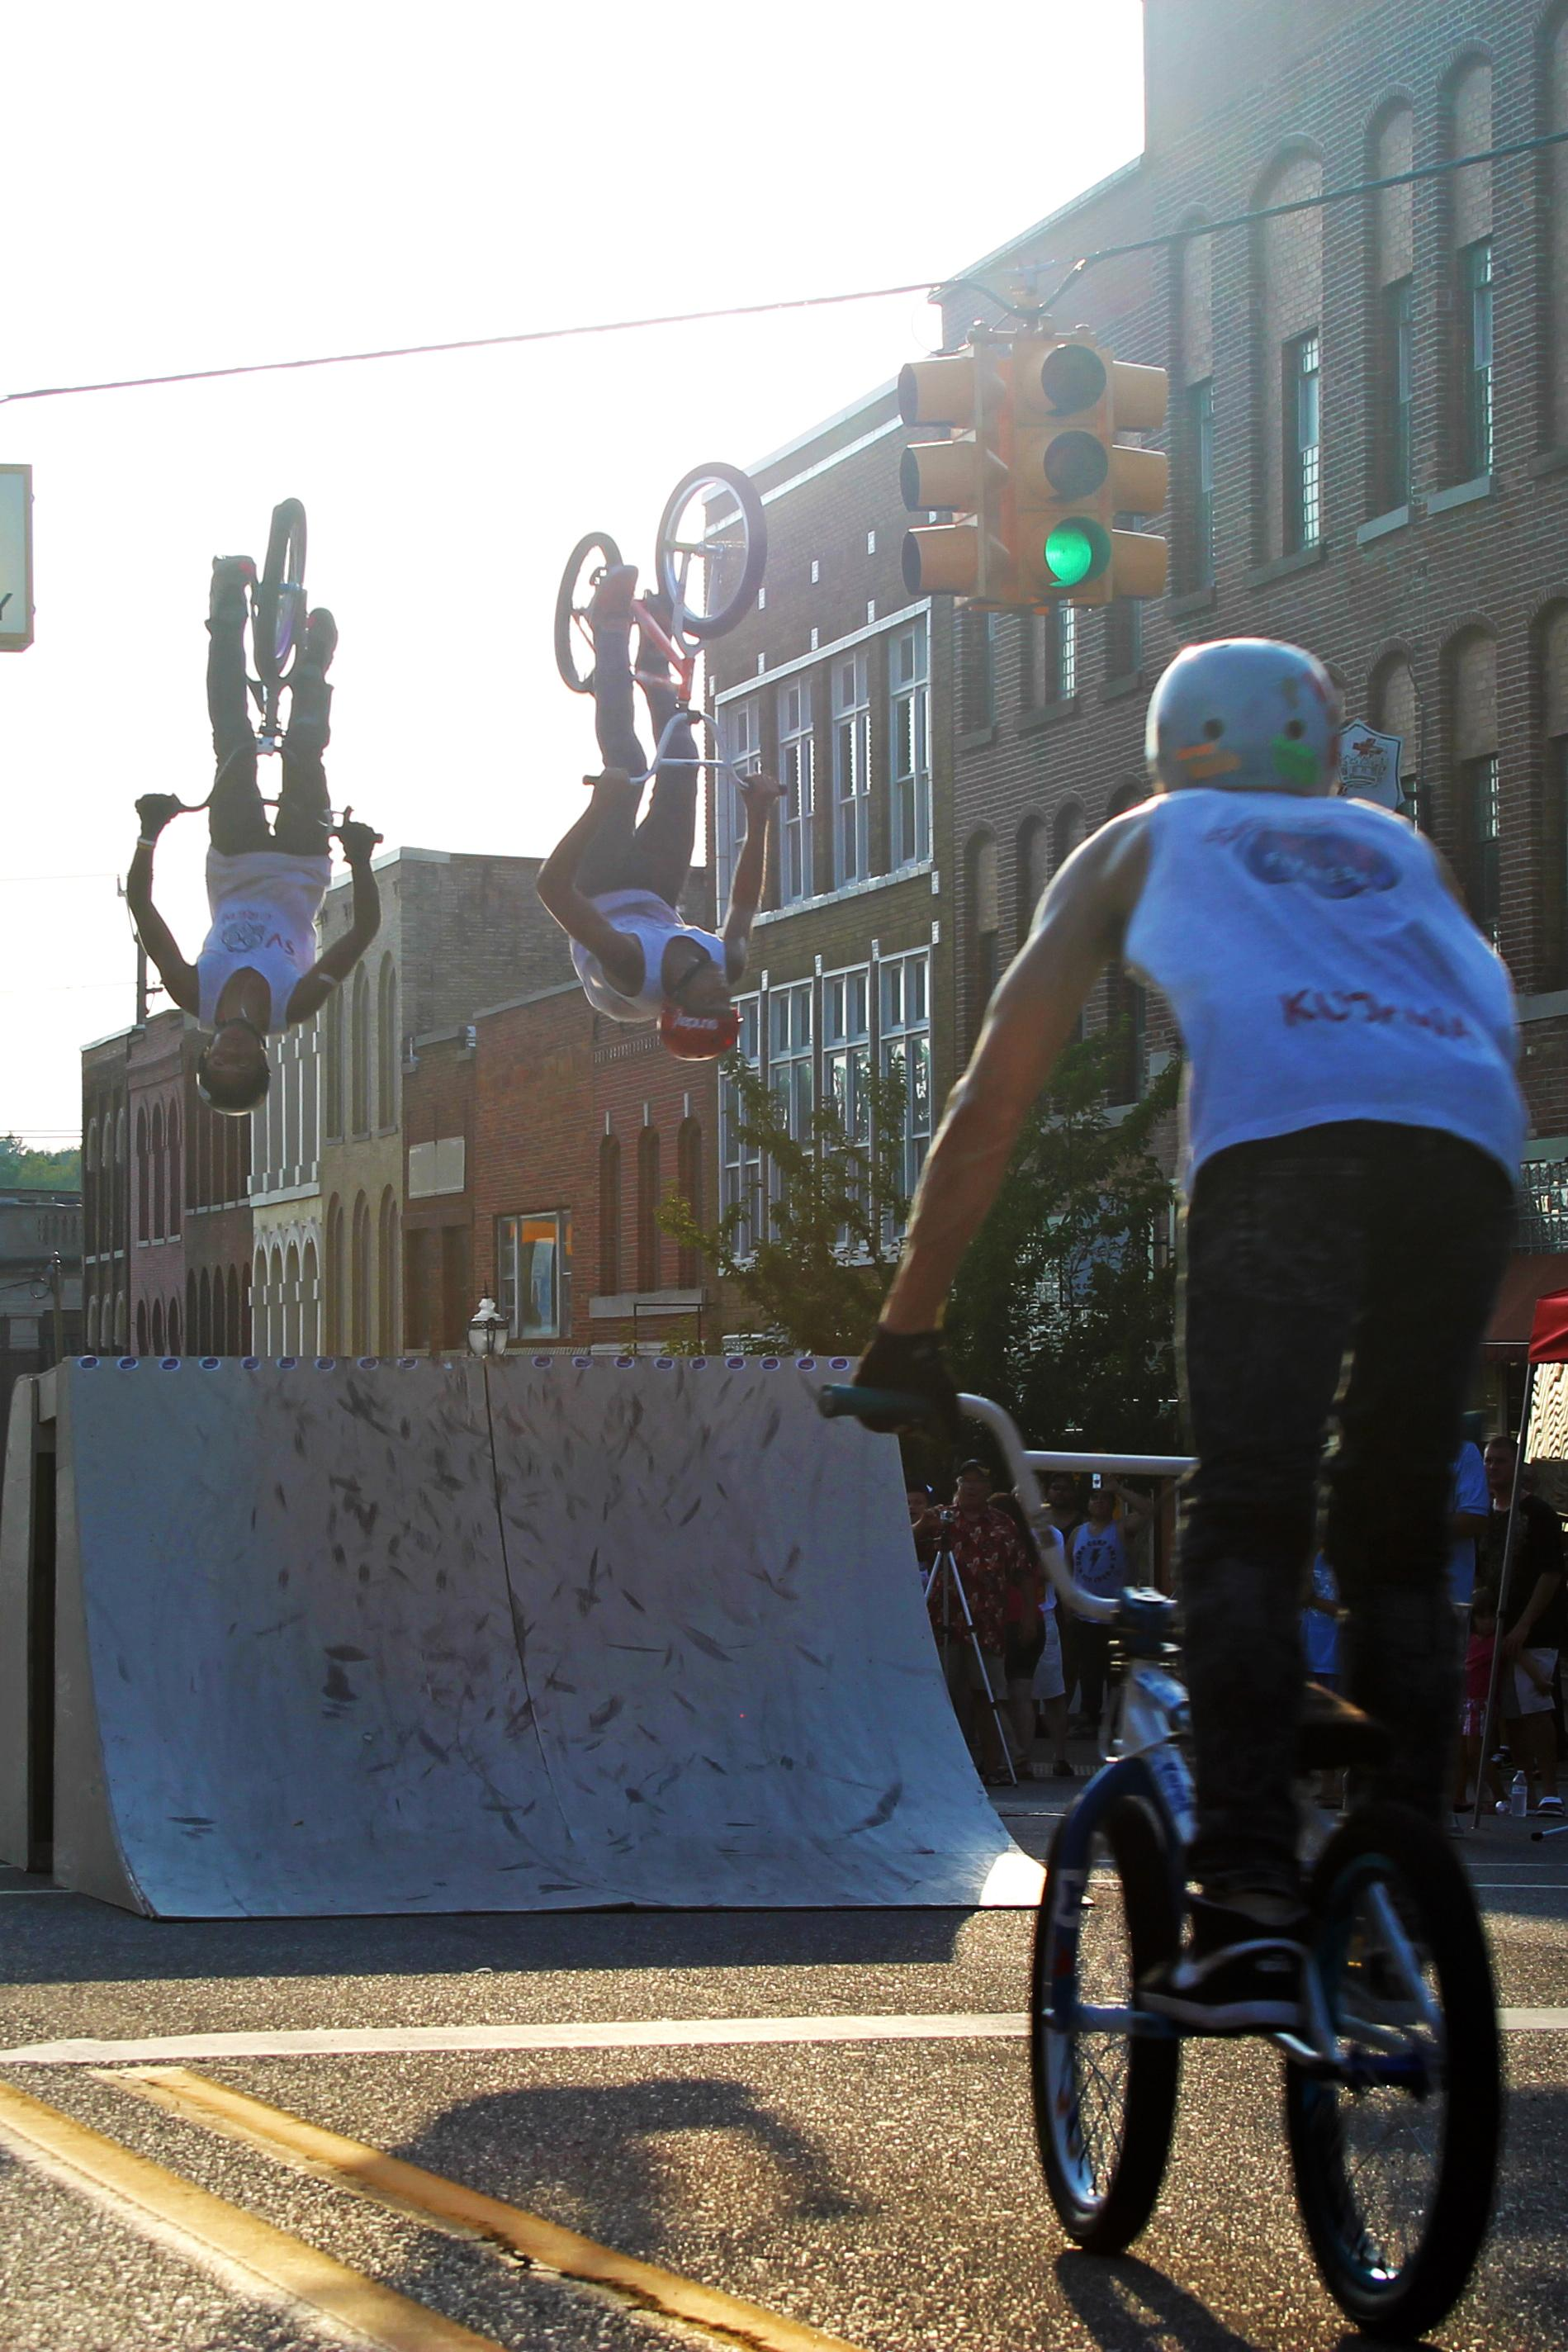 BMX bikers doing a flip off of a ramp